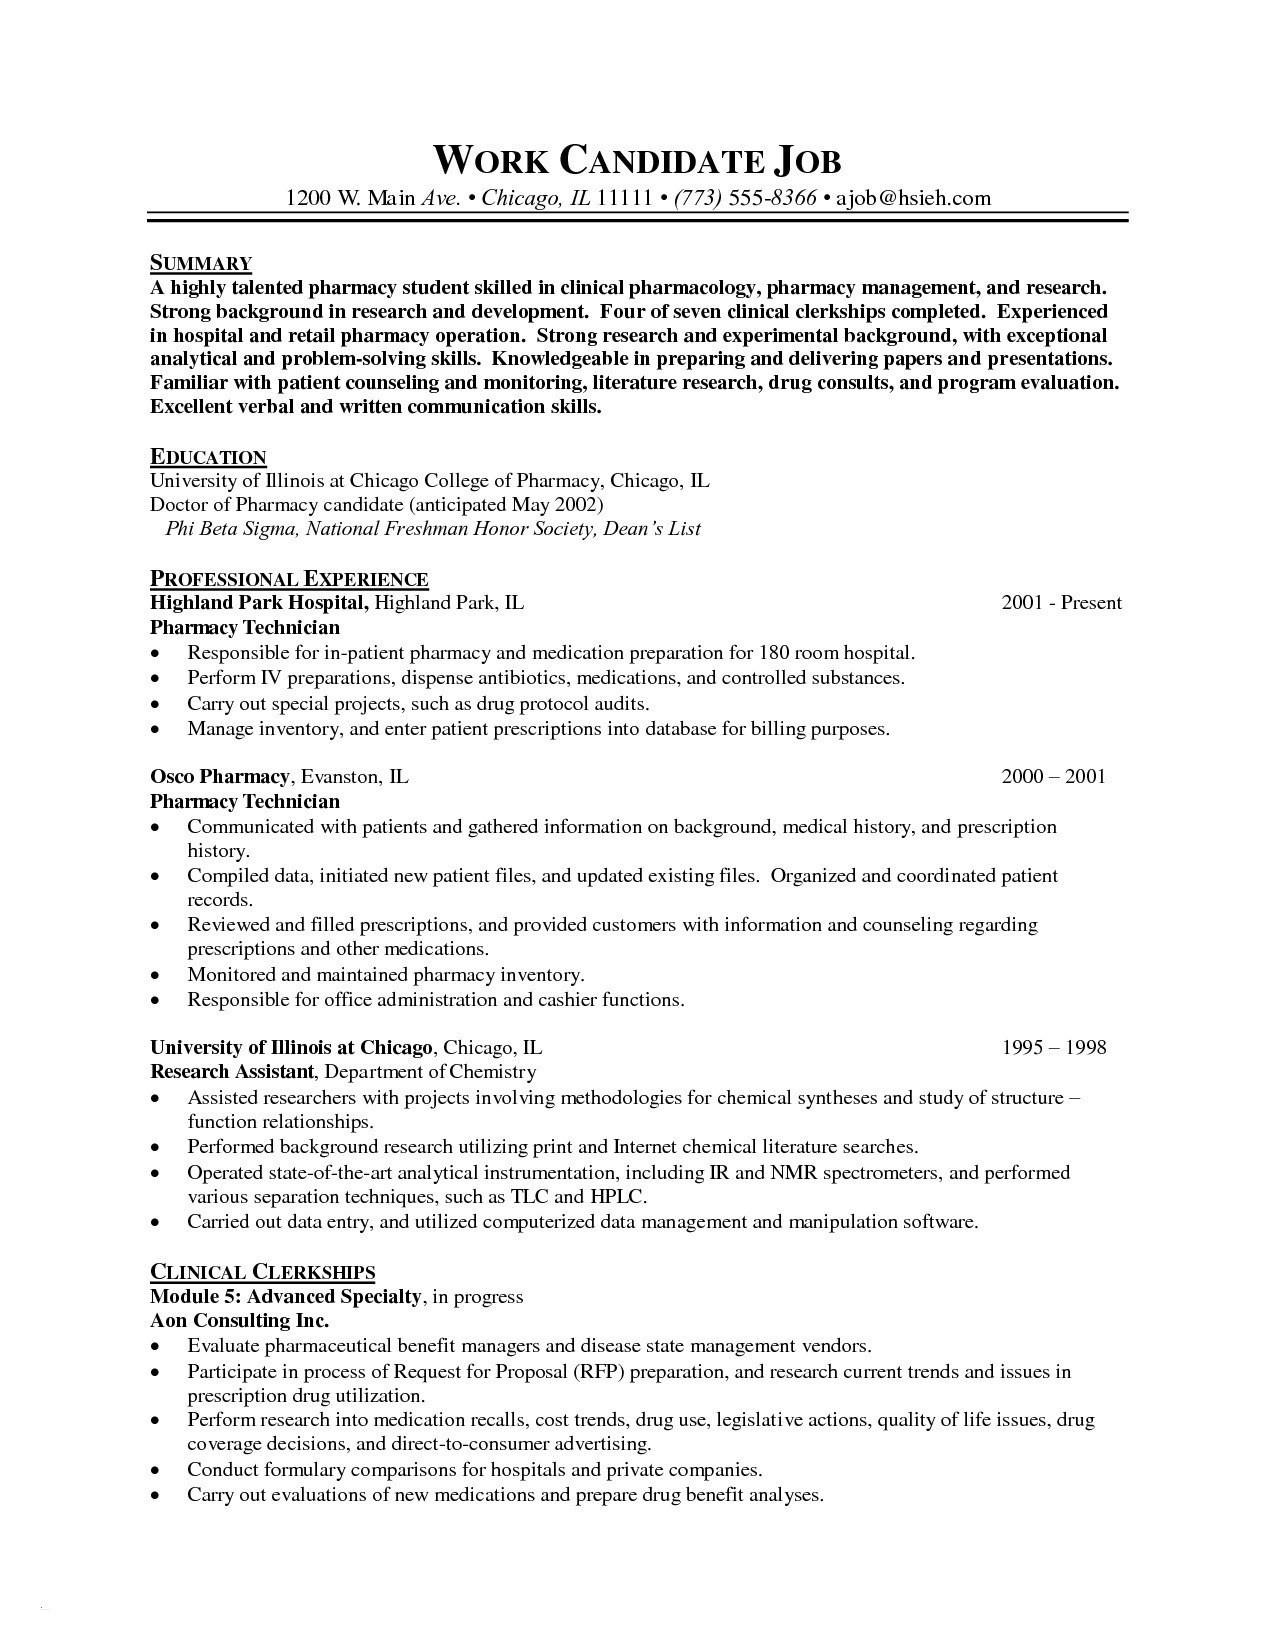 Pharmacist Resume Template Word - 25 Pharmacy Technician Job Description for Resume